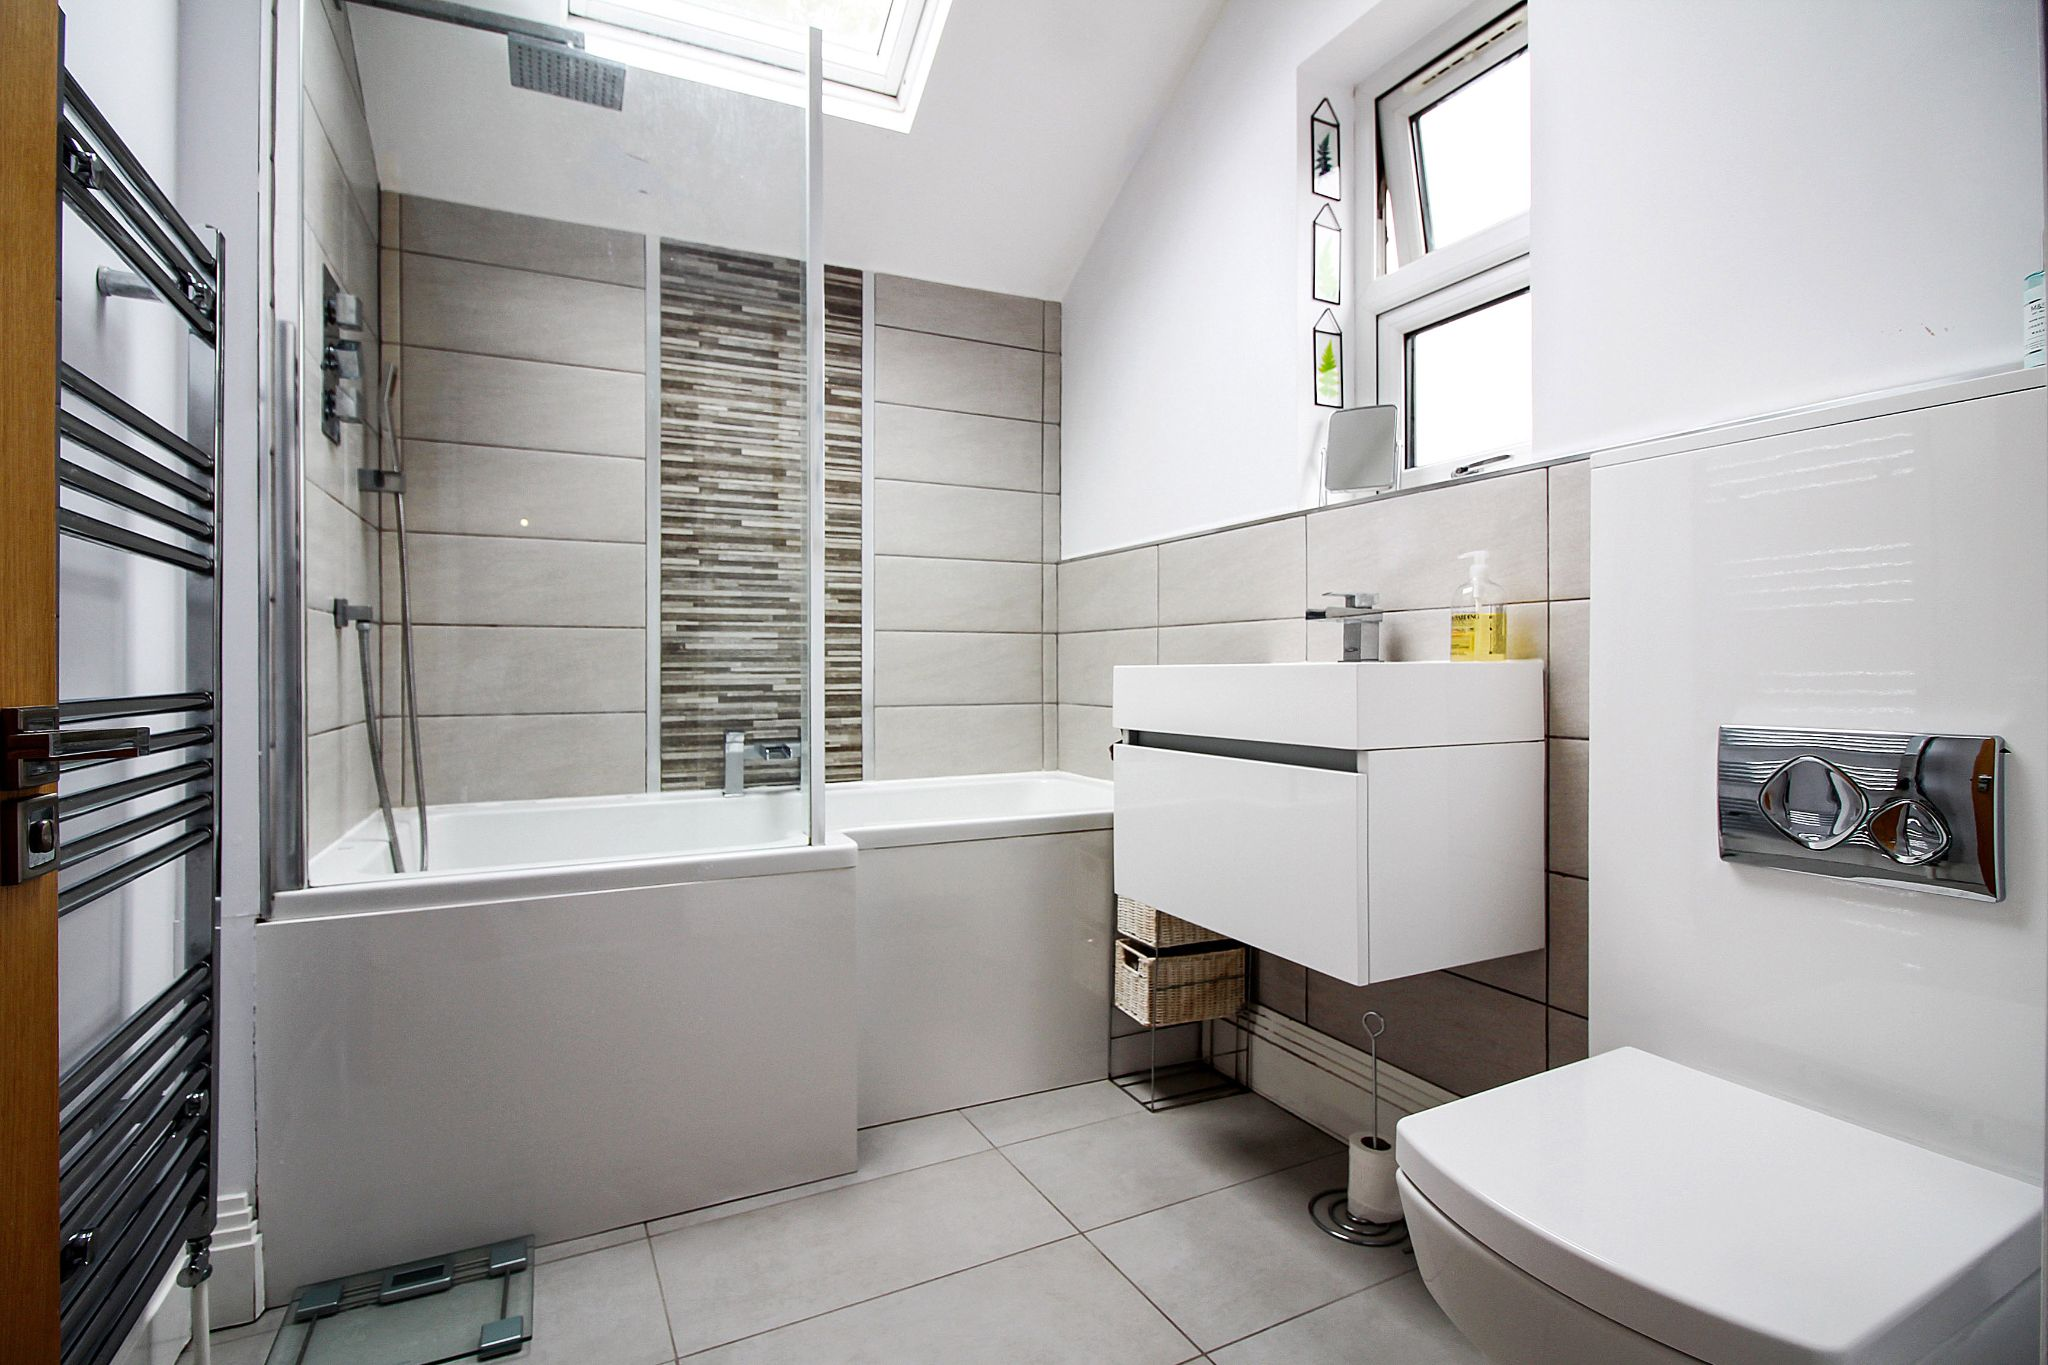 2 bedroom end terraced house For Sale in Solihull - Photograph 8.